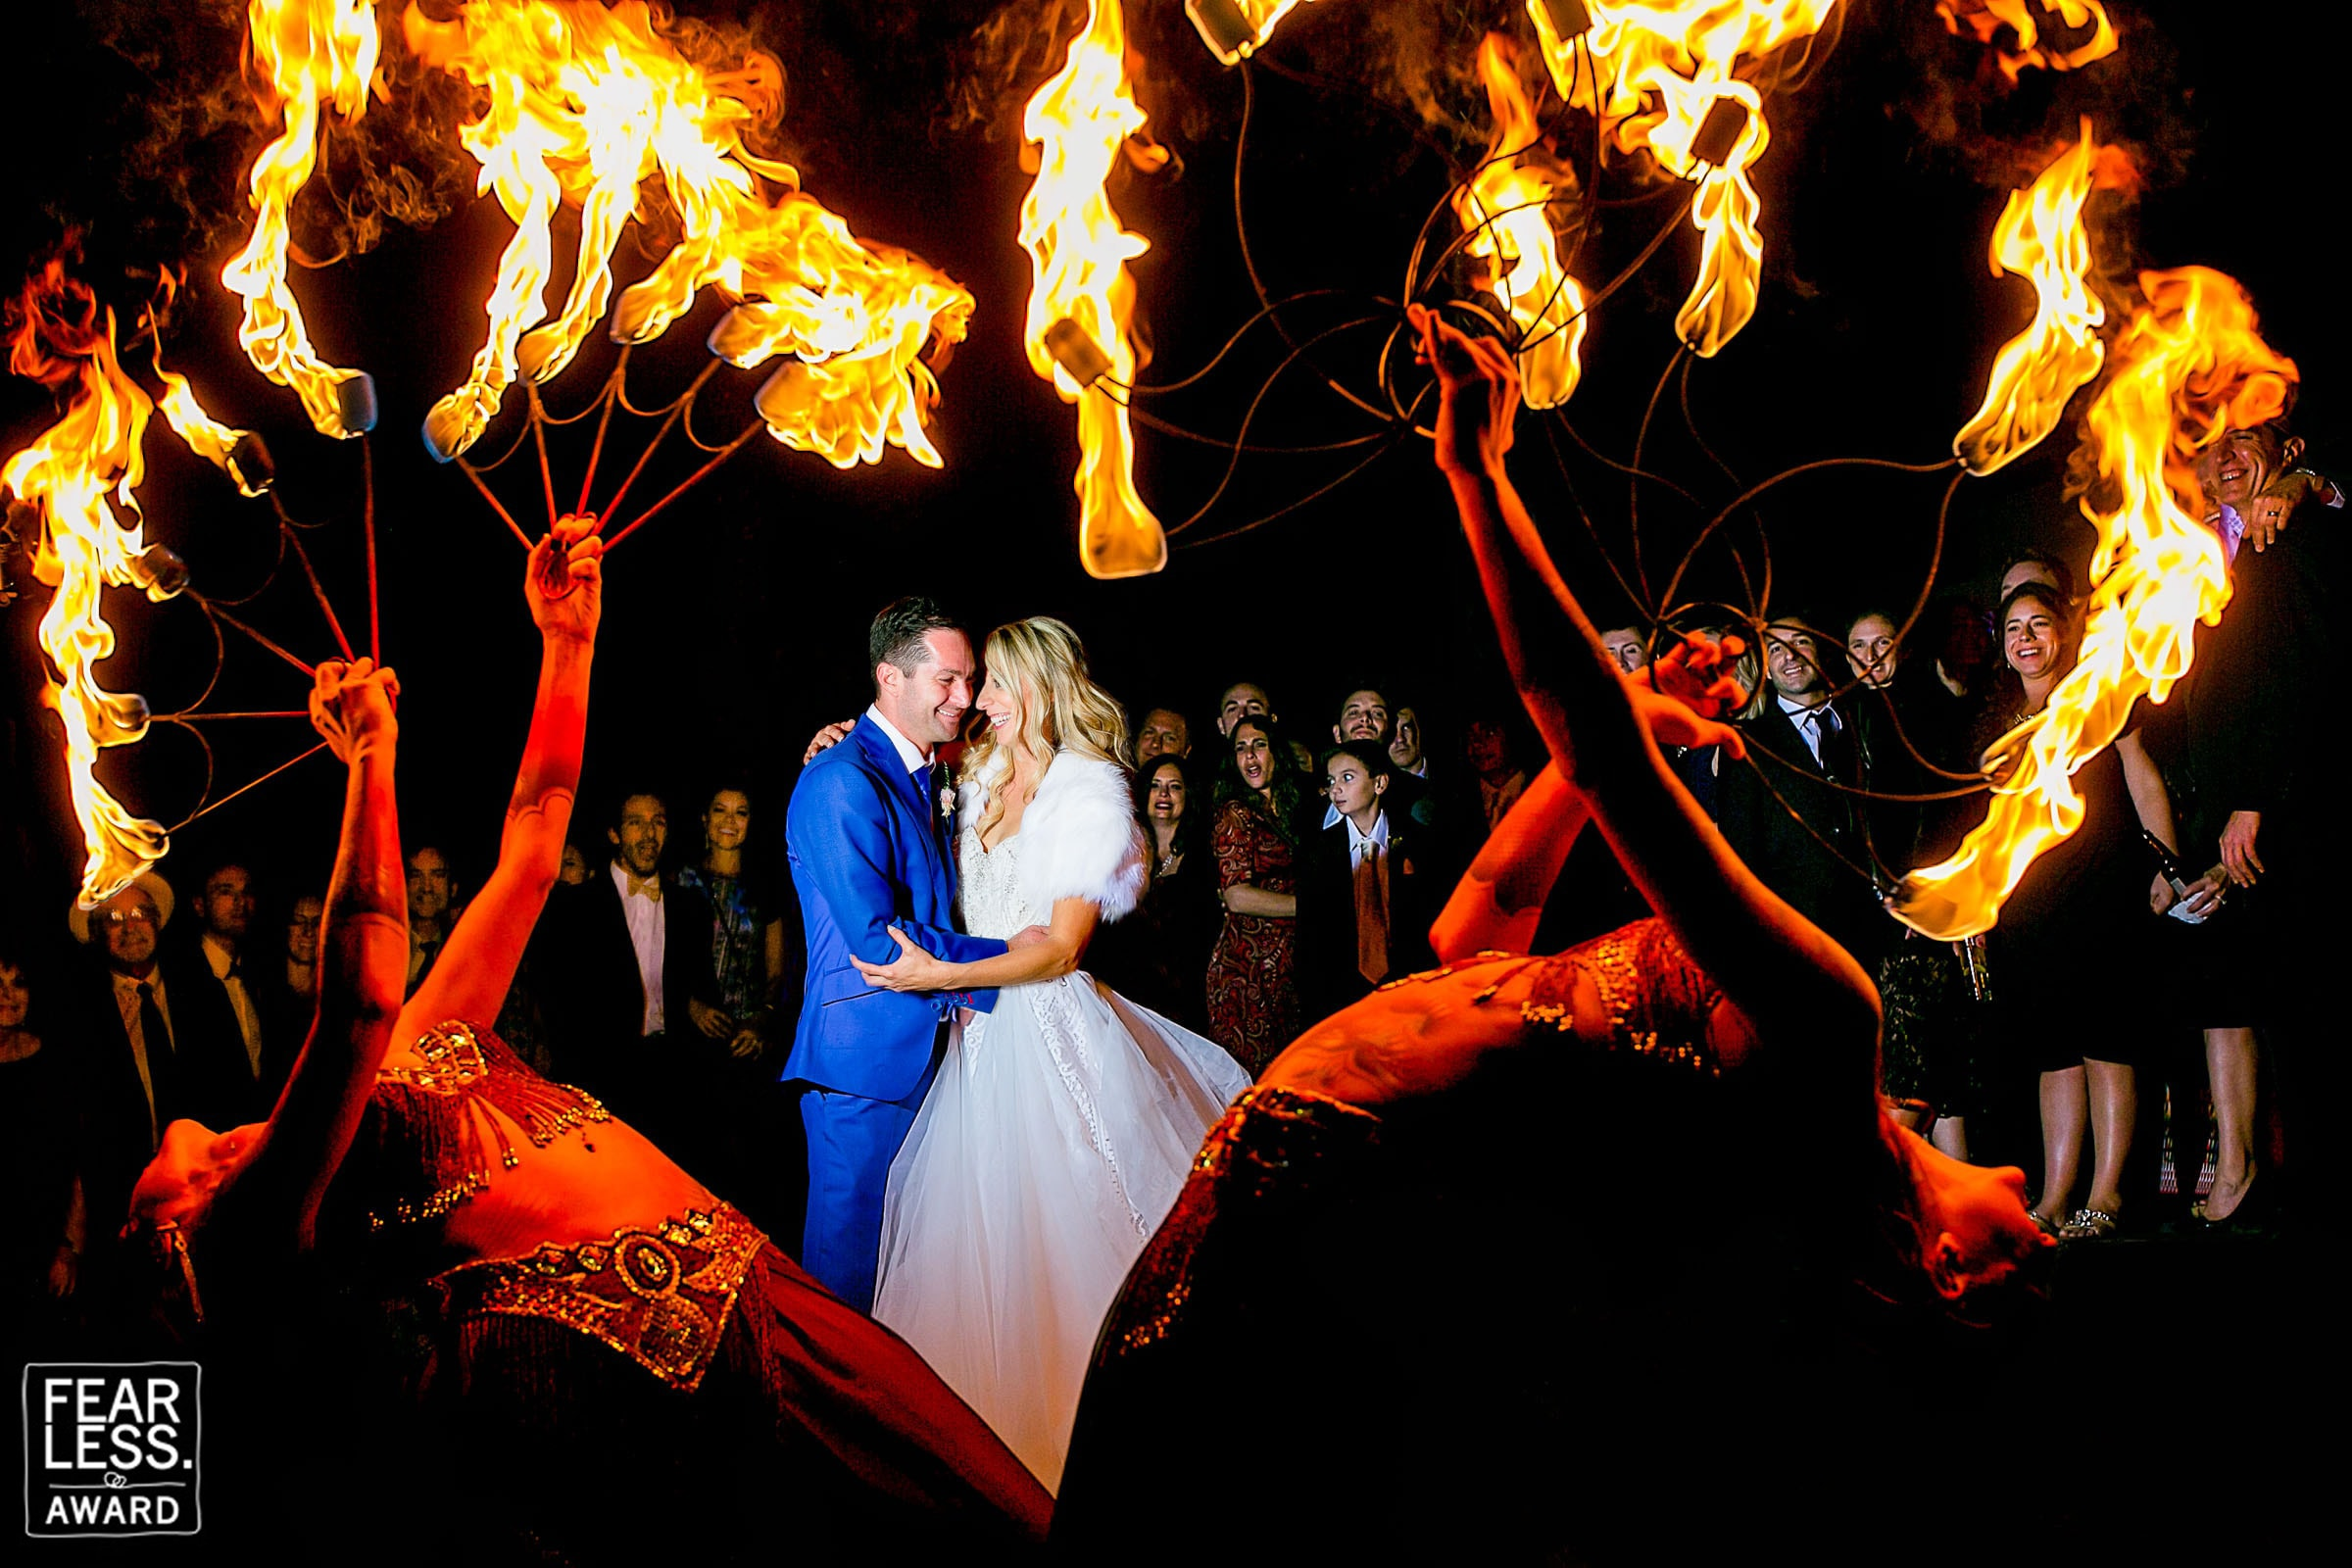 Creative portrait of Courtney White and Brian Procel fearless photographers award winning photo with circus flames surrounding them in the shape of a heart during their Merv Griffin Estate Wedding in Palm Springs